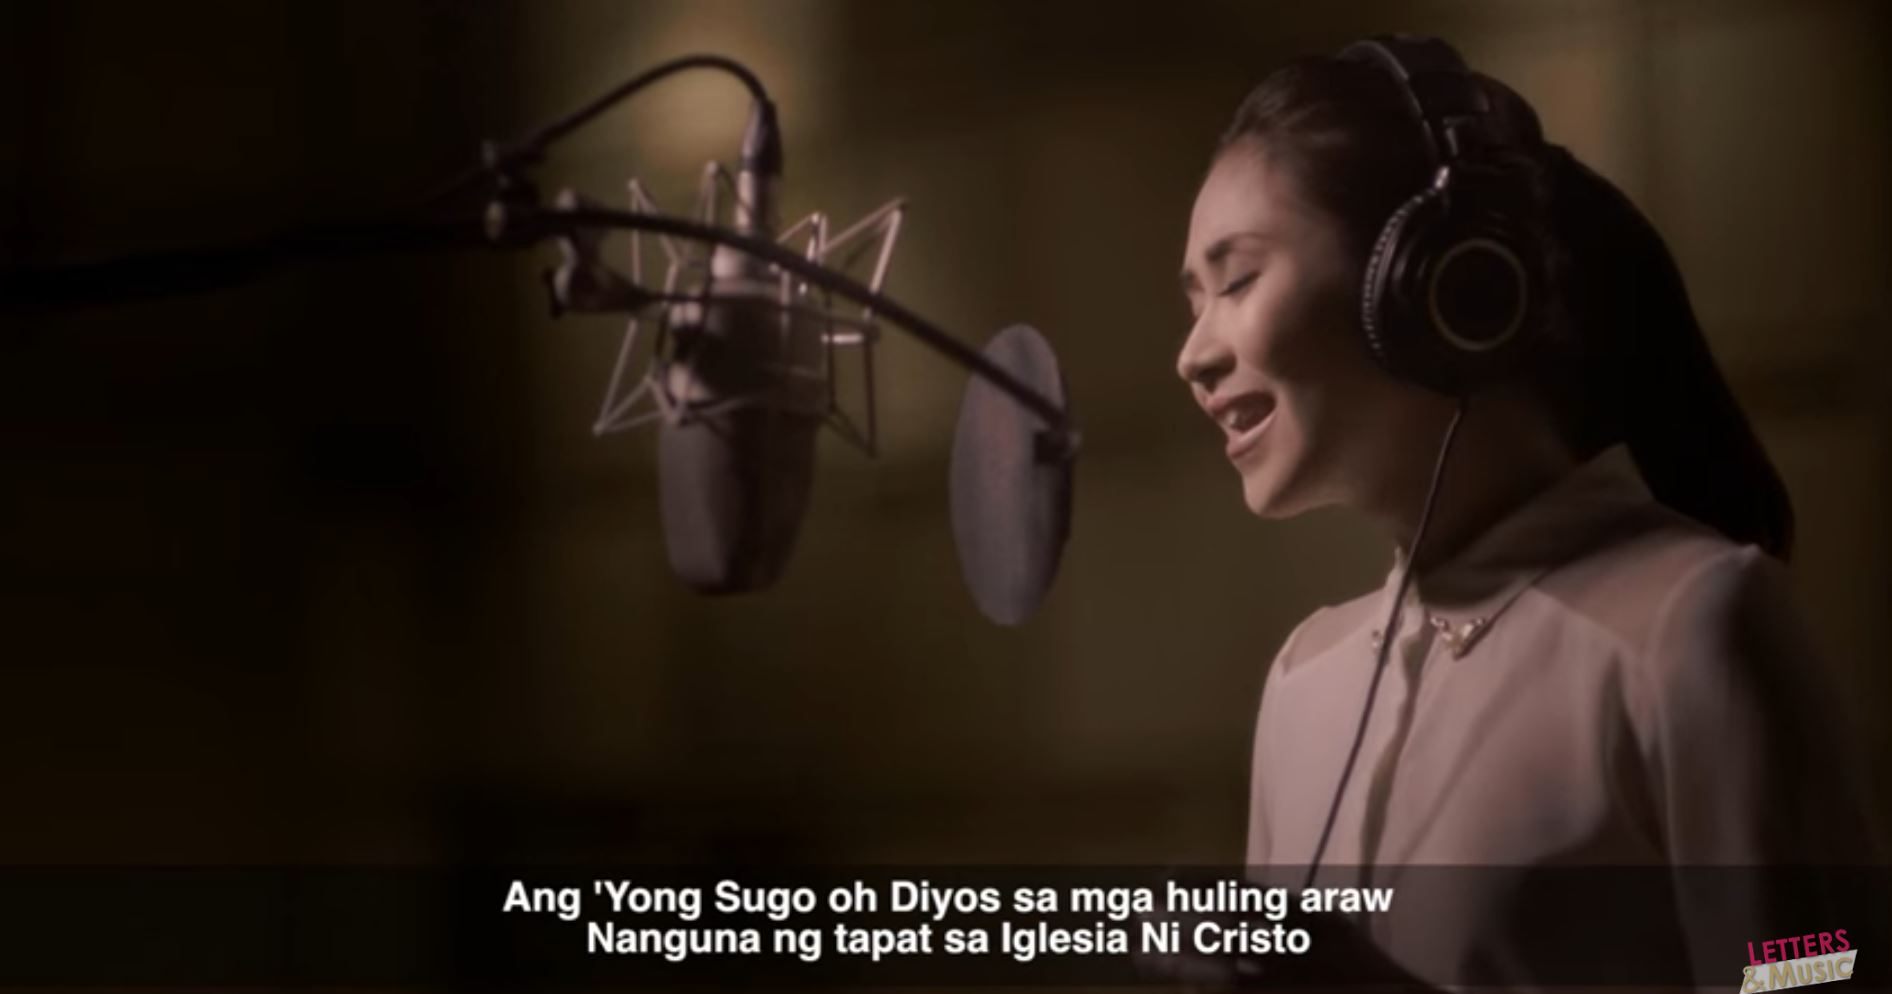 """Ang Sugo ng Diyos sa mga Huling Araw,"" theme song of the historical biographical film, ""Felix Manalo"" also won as Best Theme Song in the 64th FAMAS awards held Sunday night (December 4). The movie's theme song was sung by singer-actress Sarah Geronimo. (Eagle News Service)"